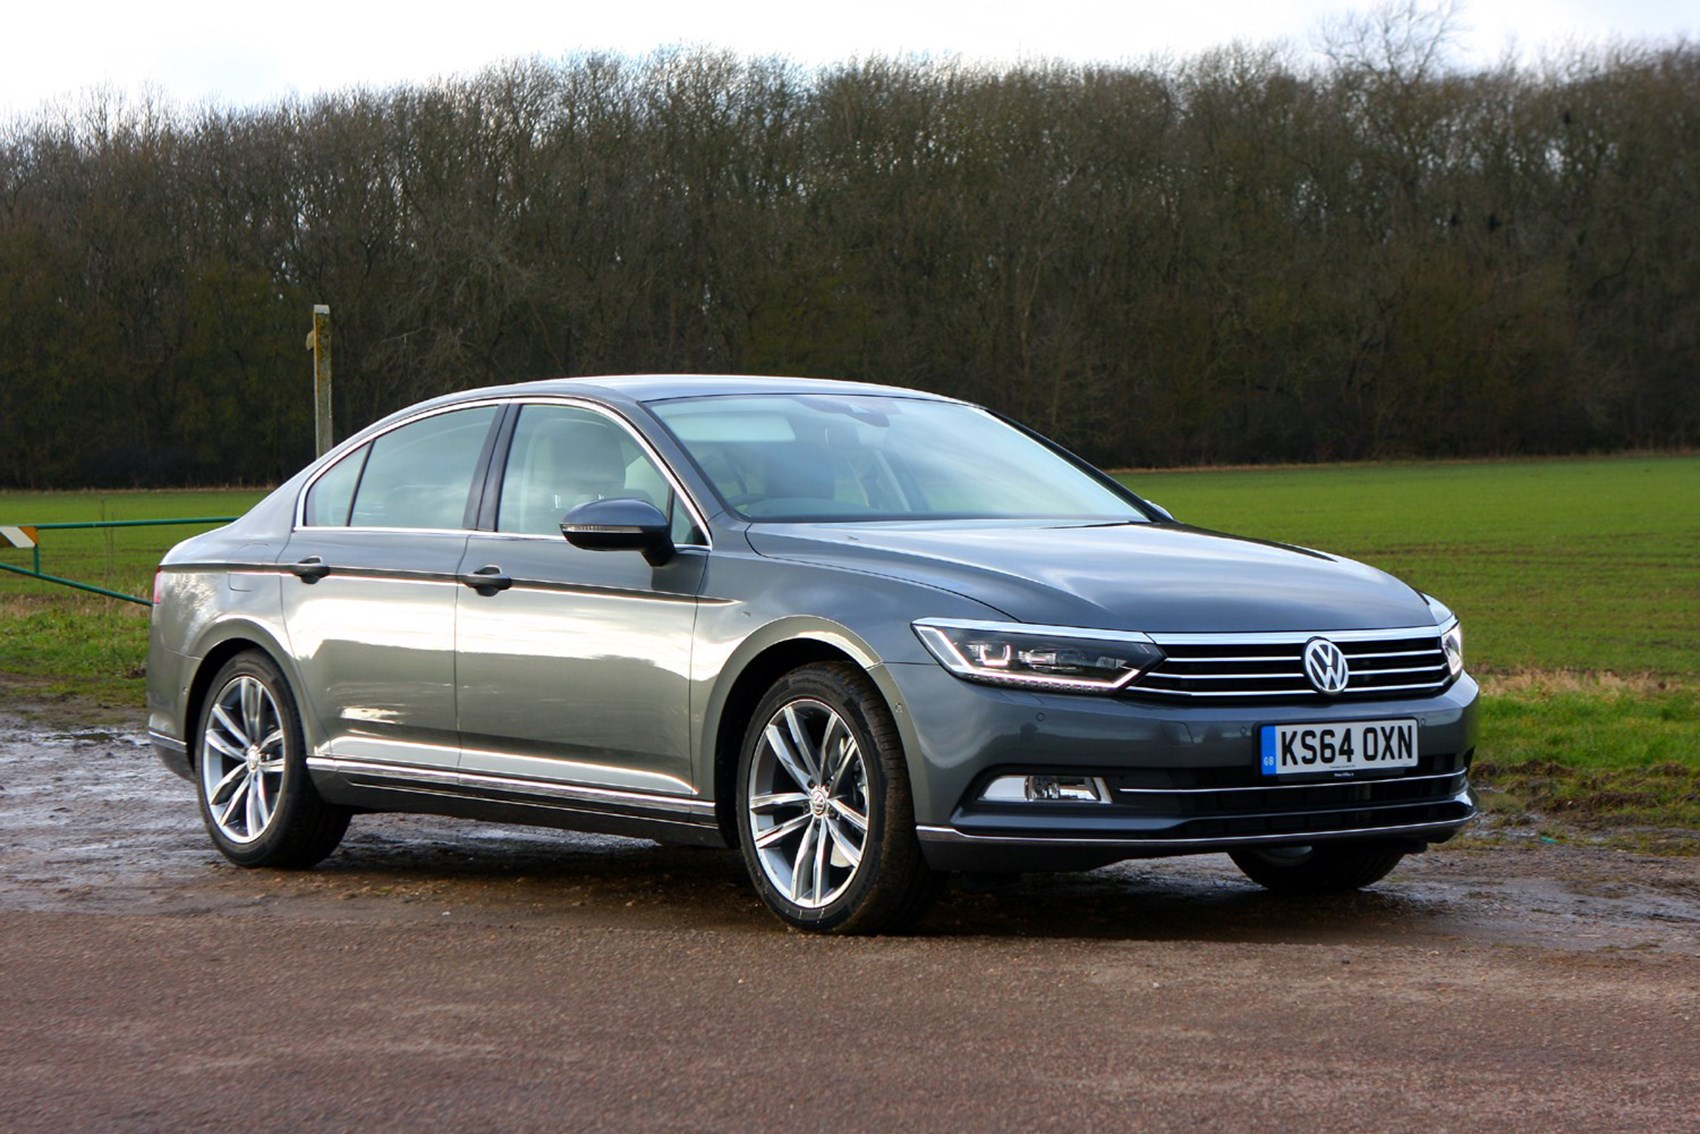 VW Passat - best towing cars reviews